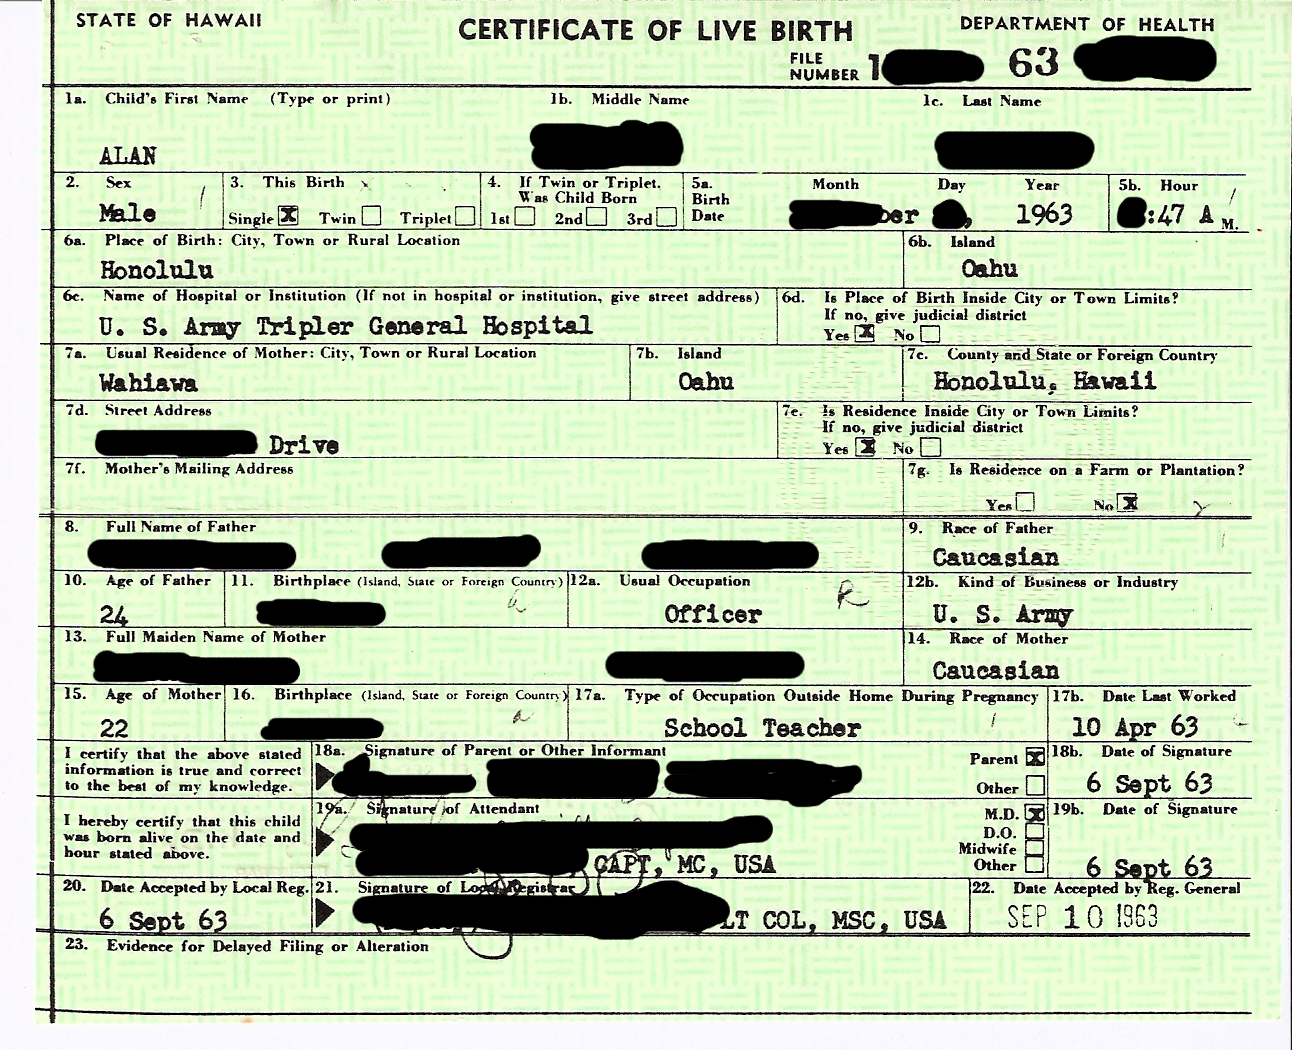 Birth certificate obama conspiracy theories 1963 alan birth certificate image from hawaii aiddatafo Image collections